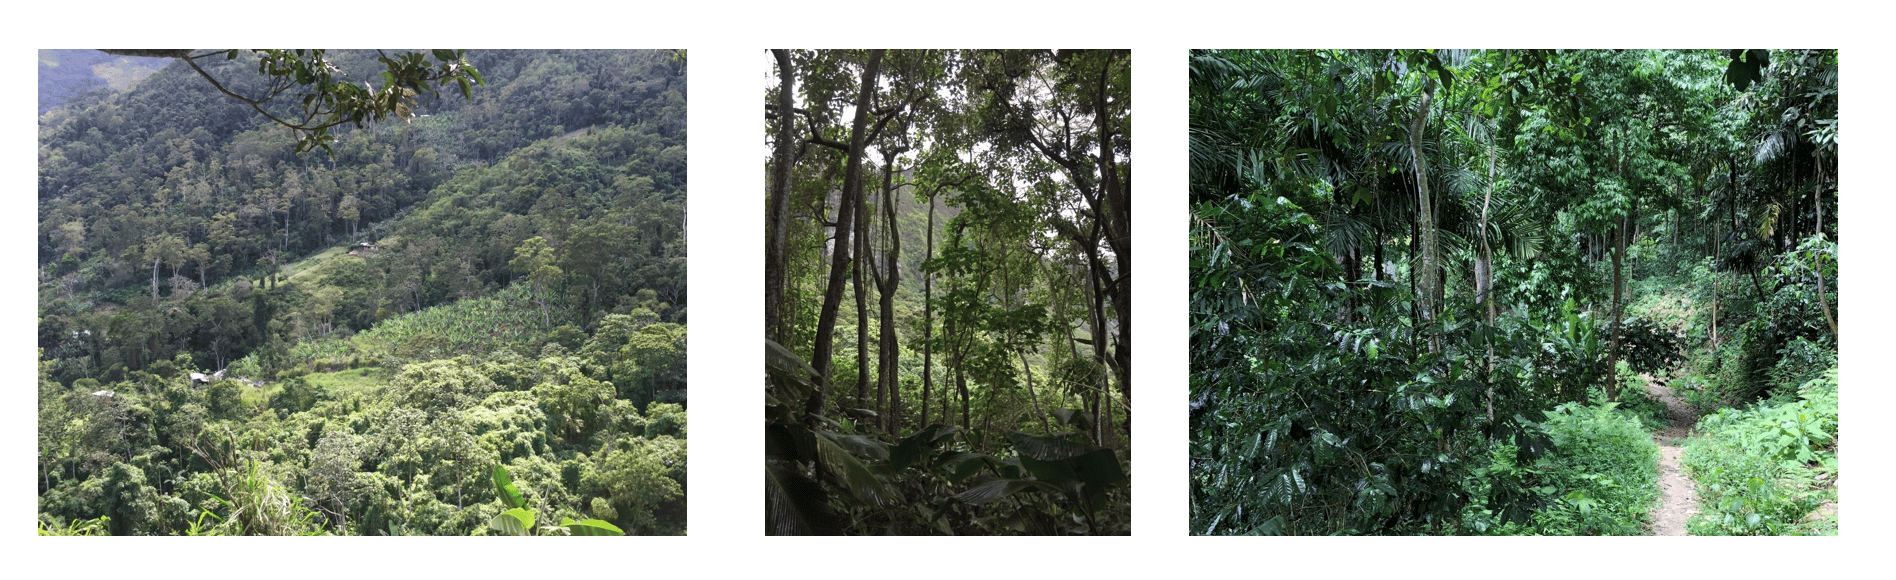 Tropical dry forests and shade-coffee forests in the Cordillera de la Costa, Venezuela